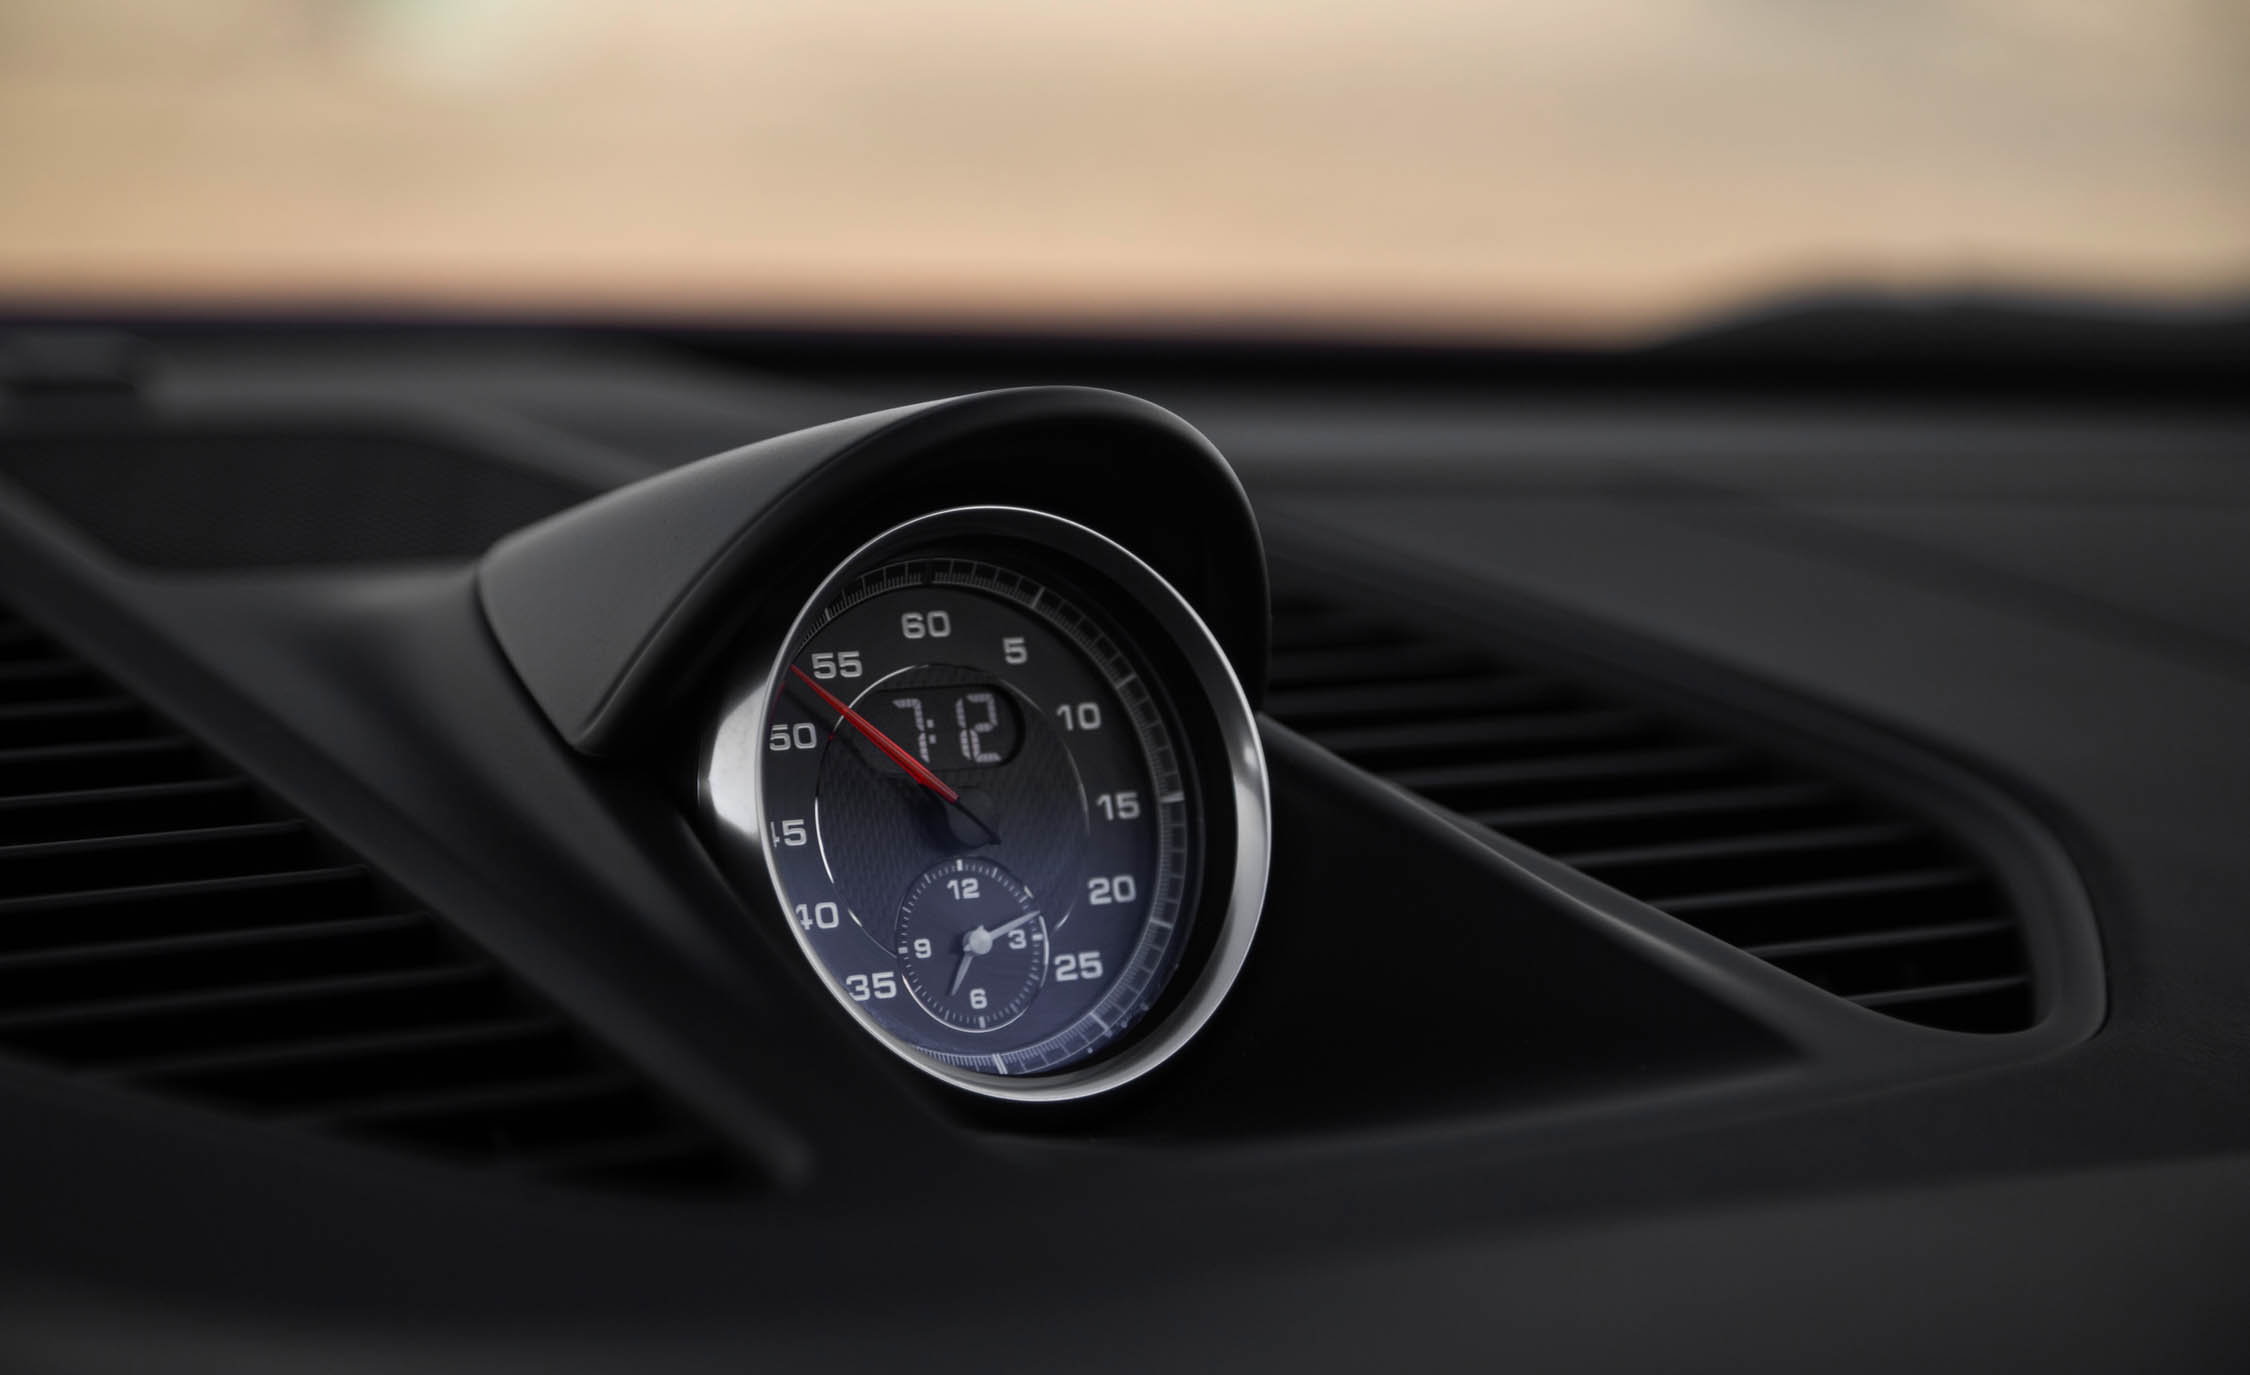 2017 Porsche 911 Targa 4 GTS Interior View Dash Clock (Photo 73 of 97)